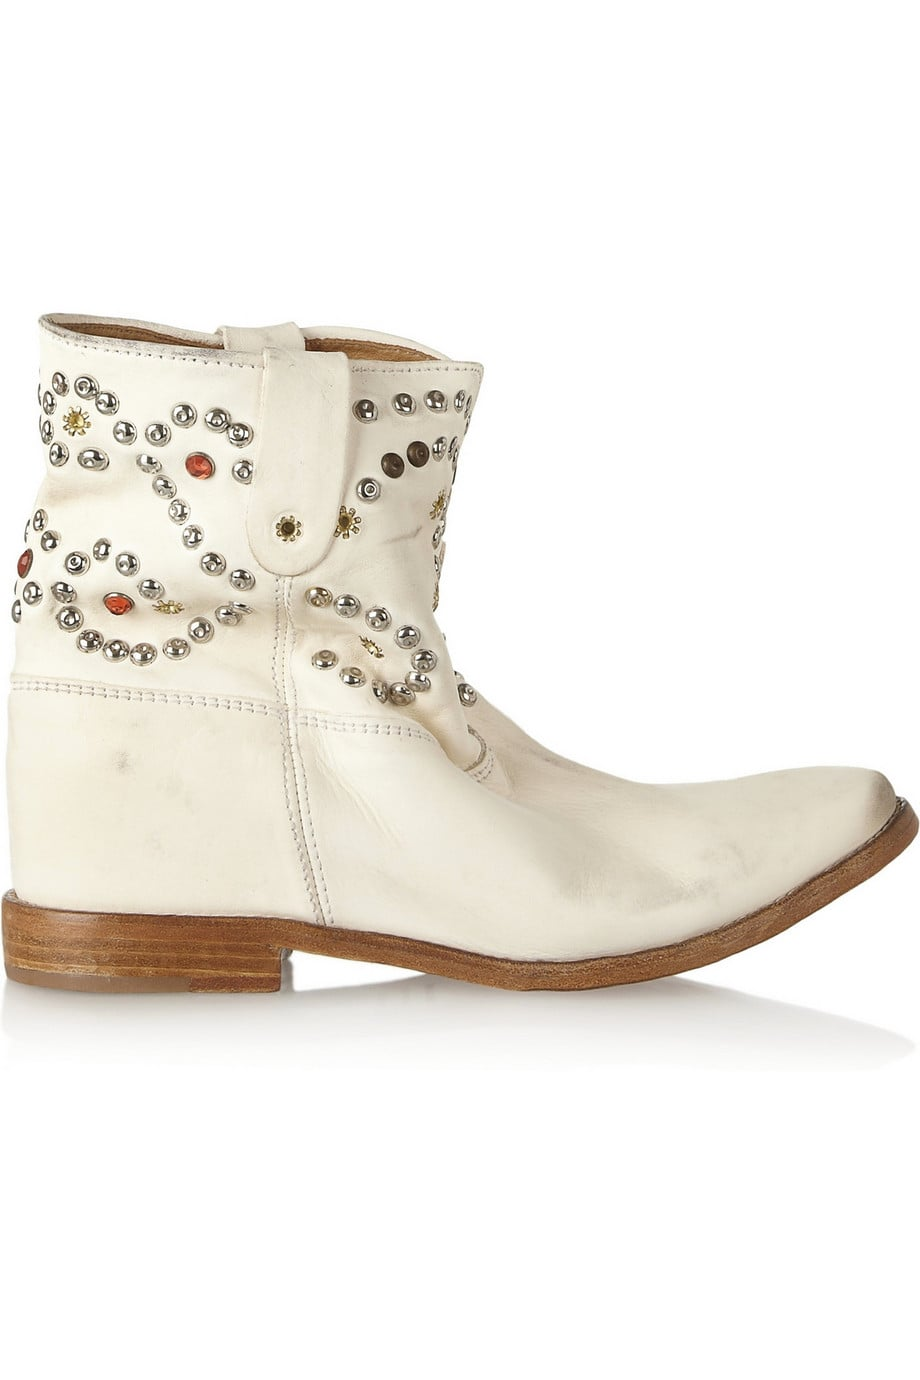 Isabel Marant Caleen Studded Leather Concealed Wedge Boot ($445, originally $890)